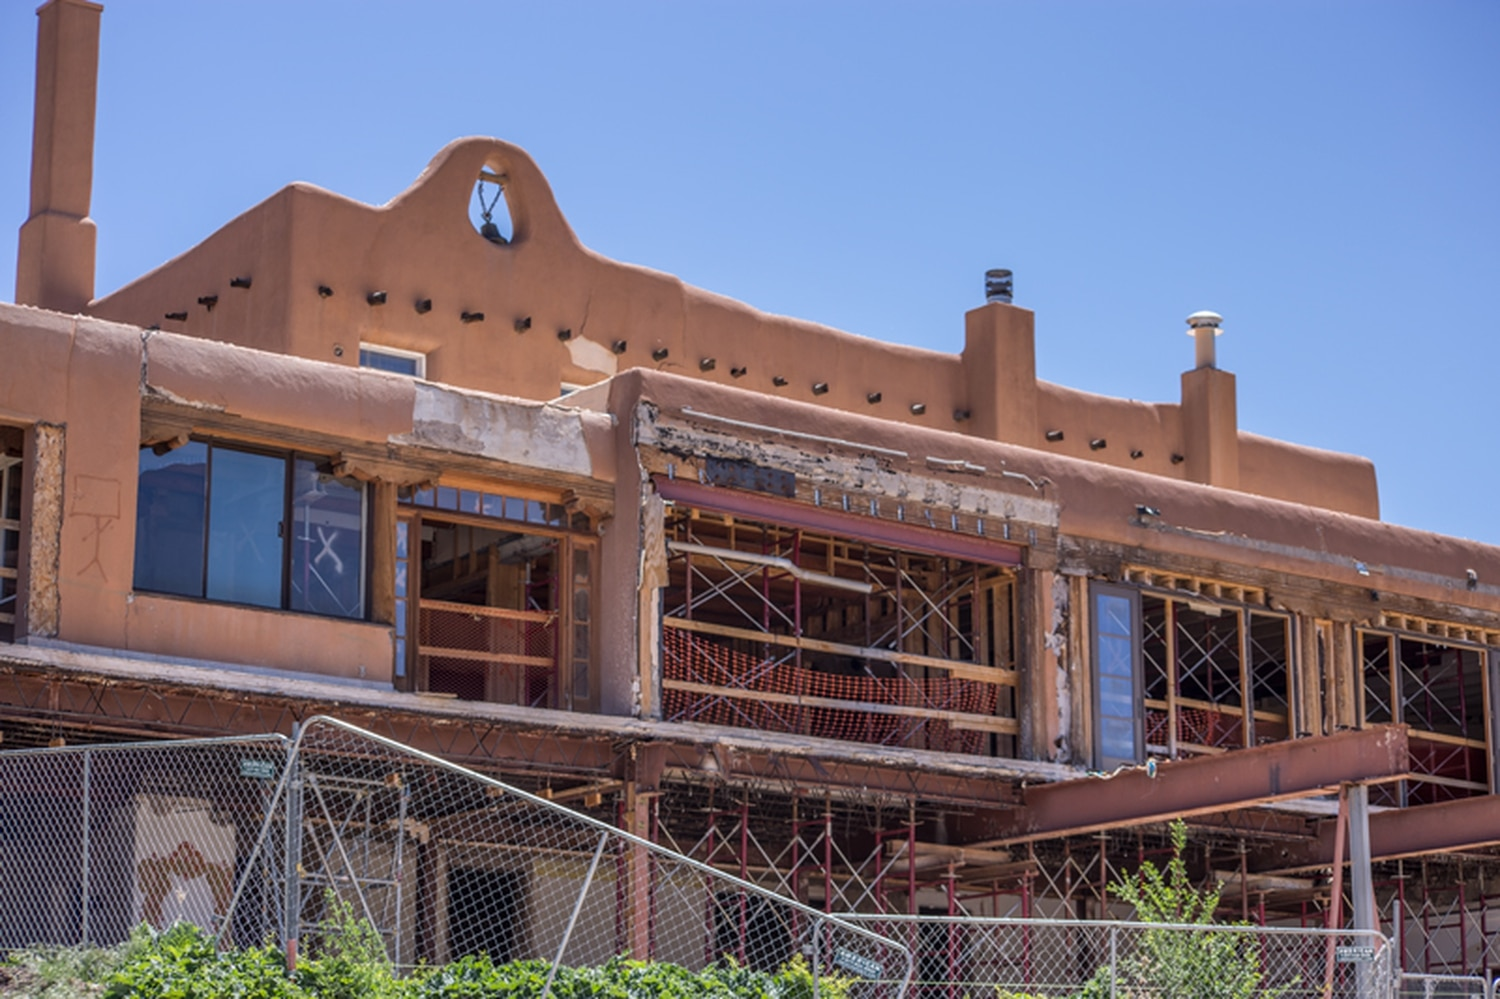 Partial reconstruction left the main lodge building exposed to the elements, and a historic preservationist says the Lamy chapel is likely in danger.